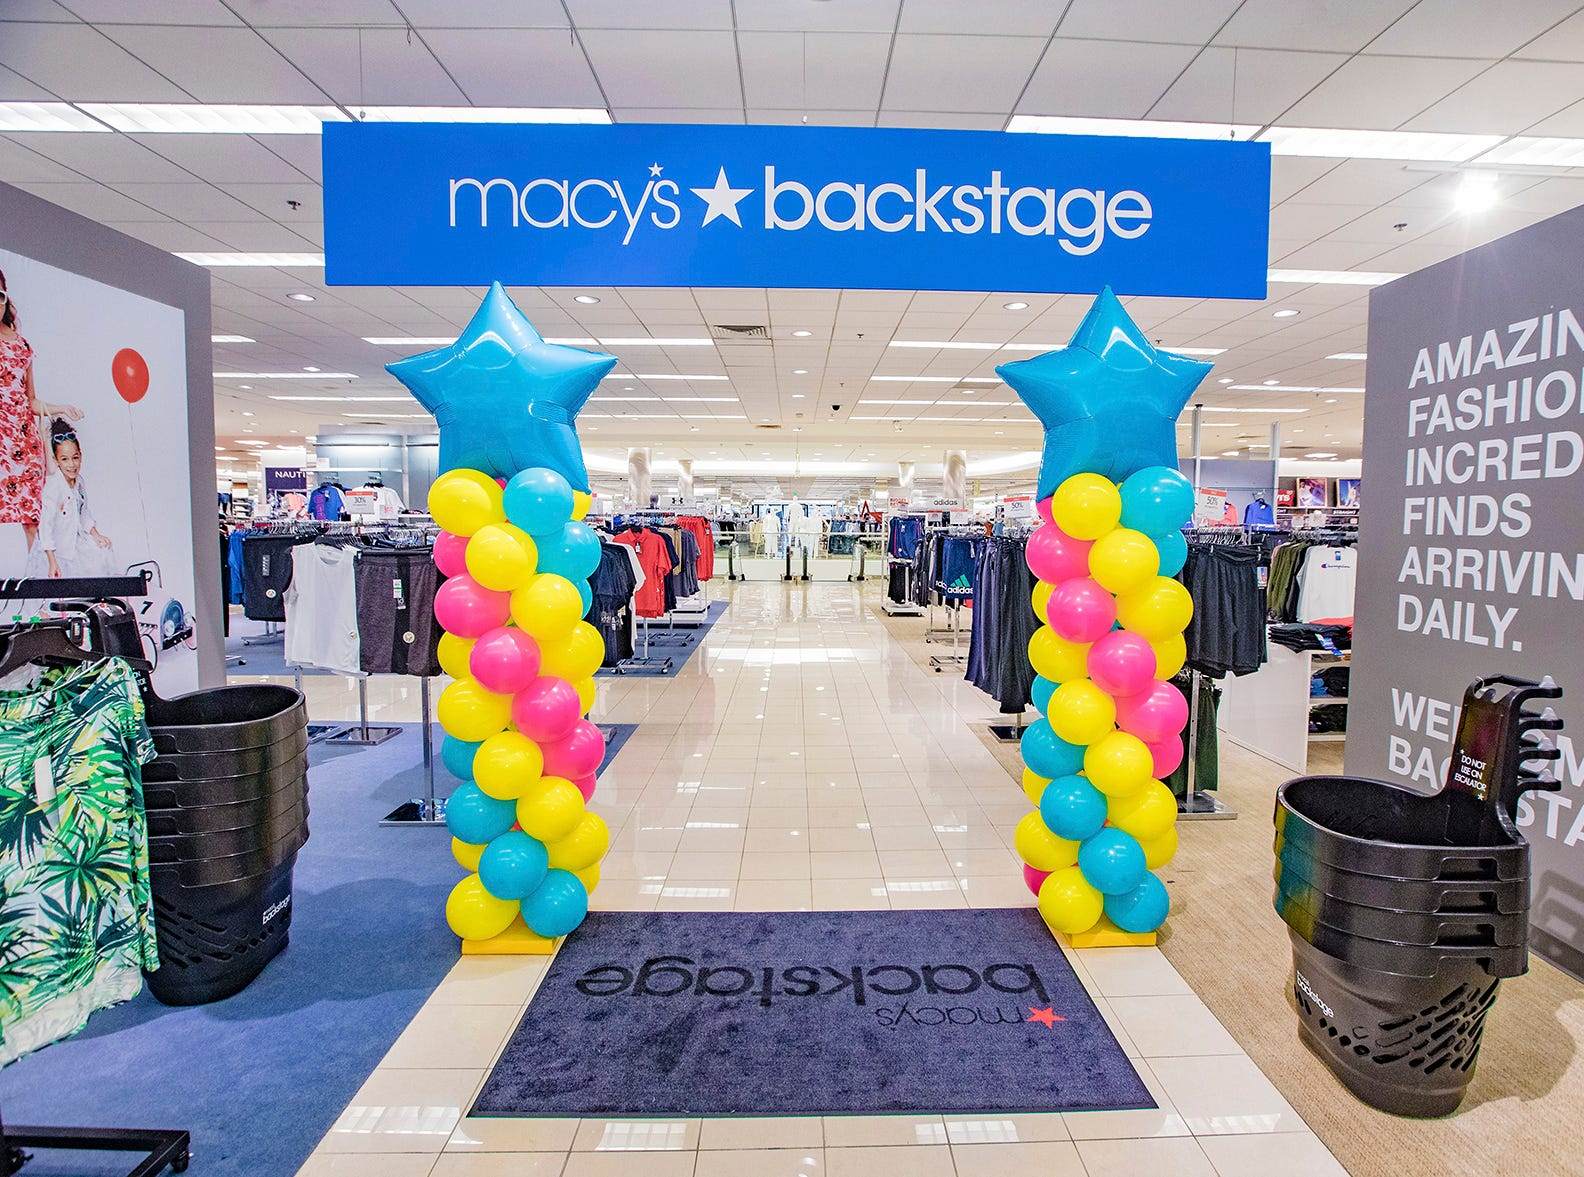 Macy's Backstage openedat the Macy's location inMenlo Park Mall, on Saturday, April 13.Macy's Backstage provides a store-within-store shopping experience featuring significant savings on fabulous finds.